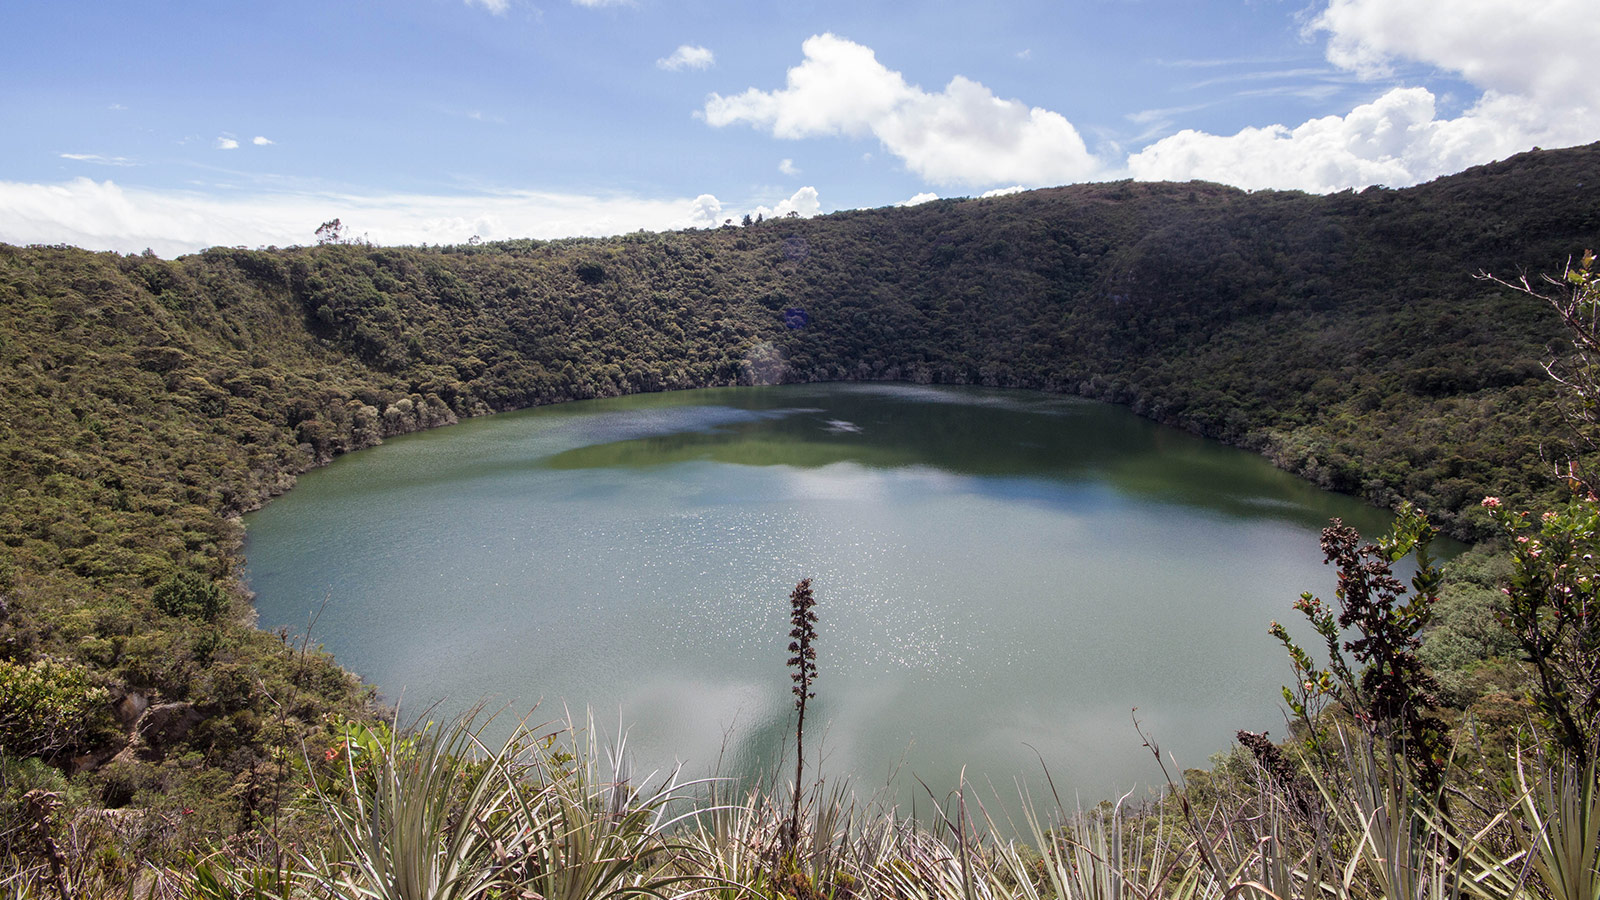 A crater lake surrounded by jungle that is believed to be part of the Lost City of Gold in Guatavita Colombia with Kids